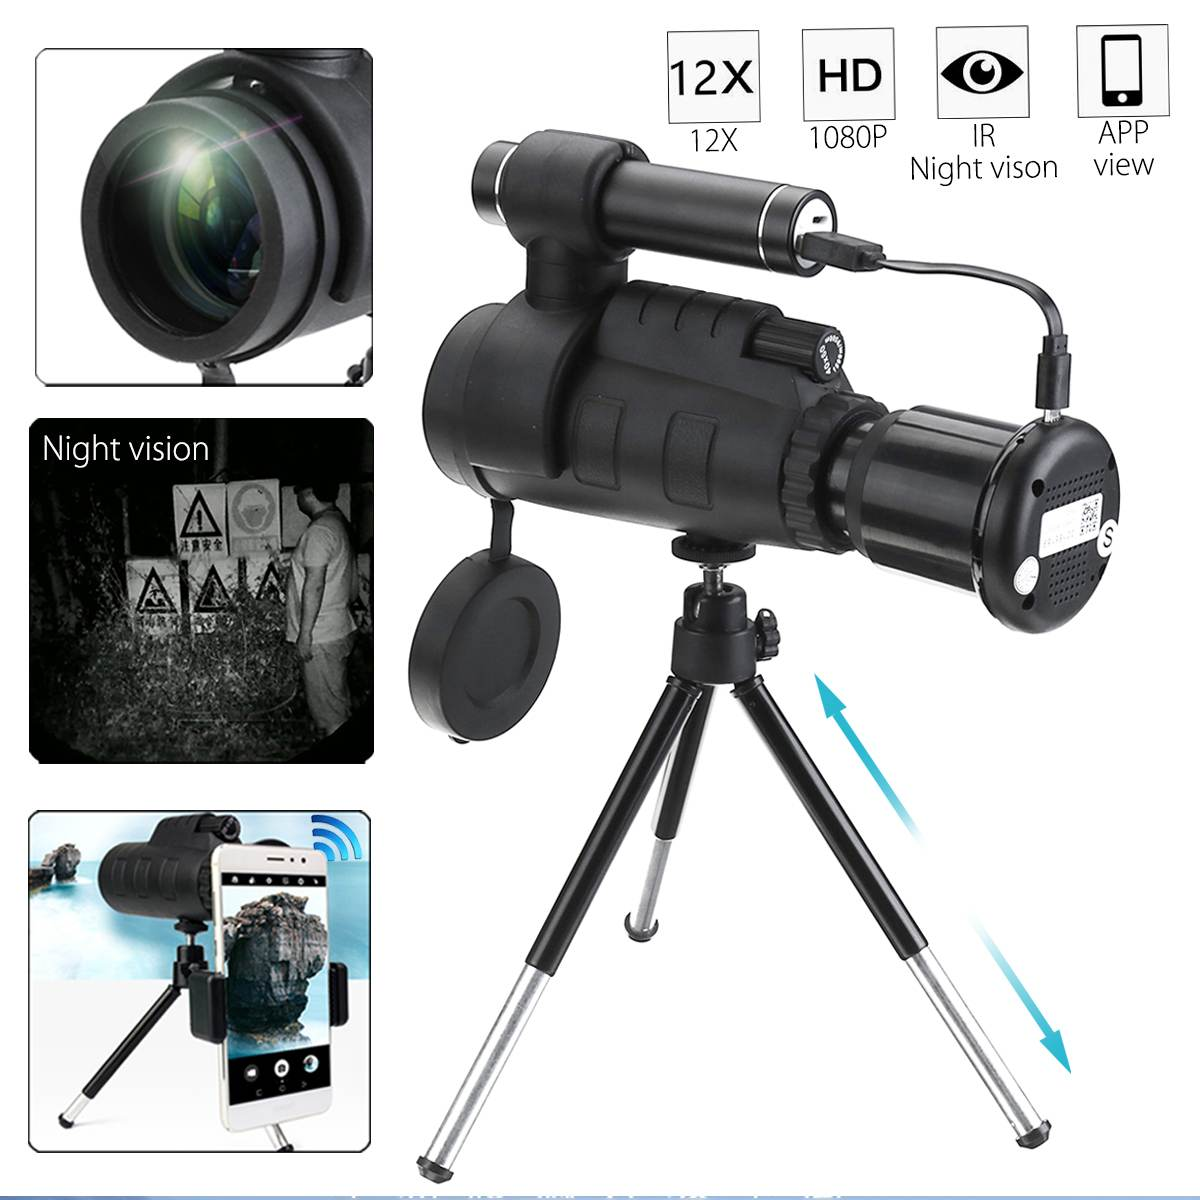 40x60 WIFI HD IR Infrared Night Vision Optical Monocular Telescope for Hunting Camping Adjustable Tripod Holder